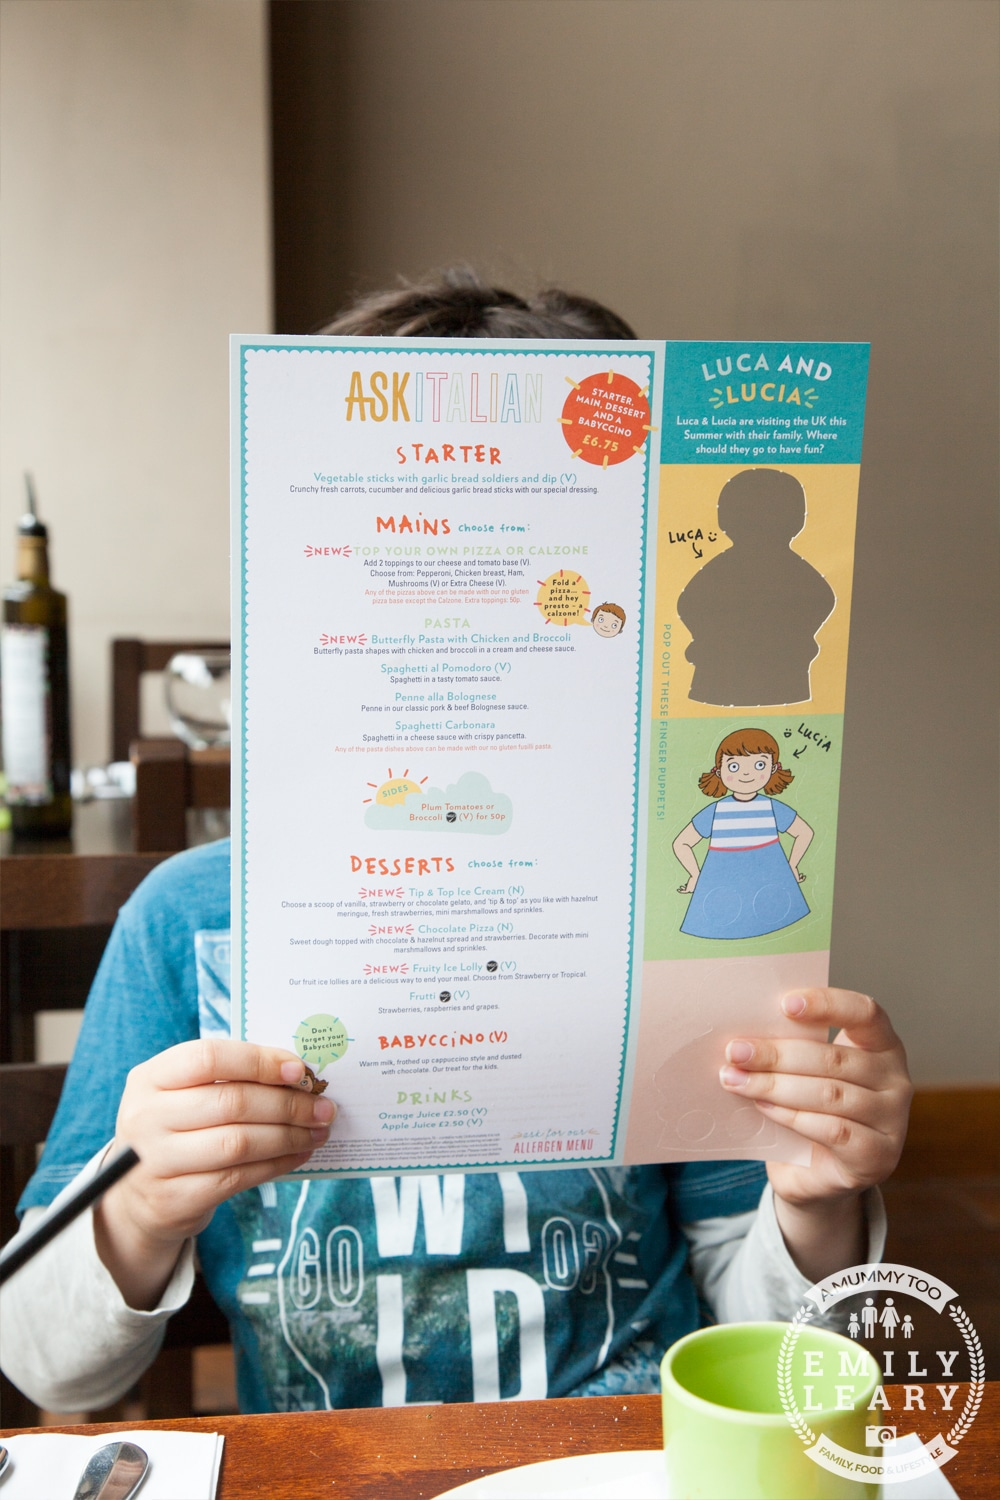 ASK-Italian-Children's-Menu-looking